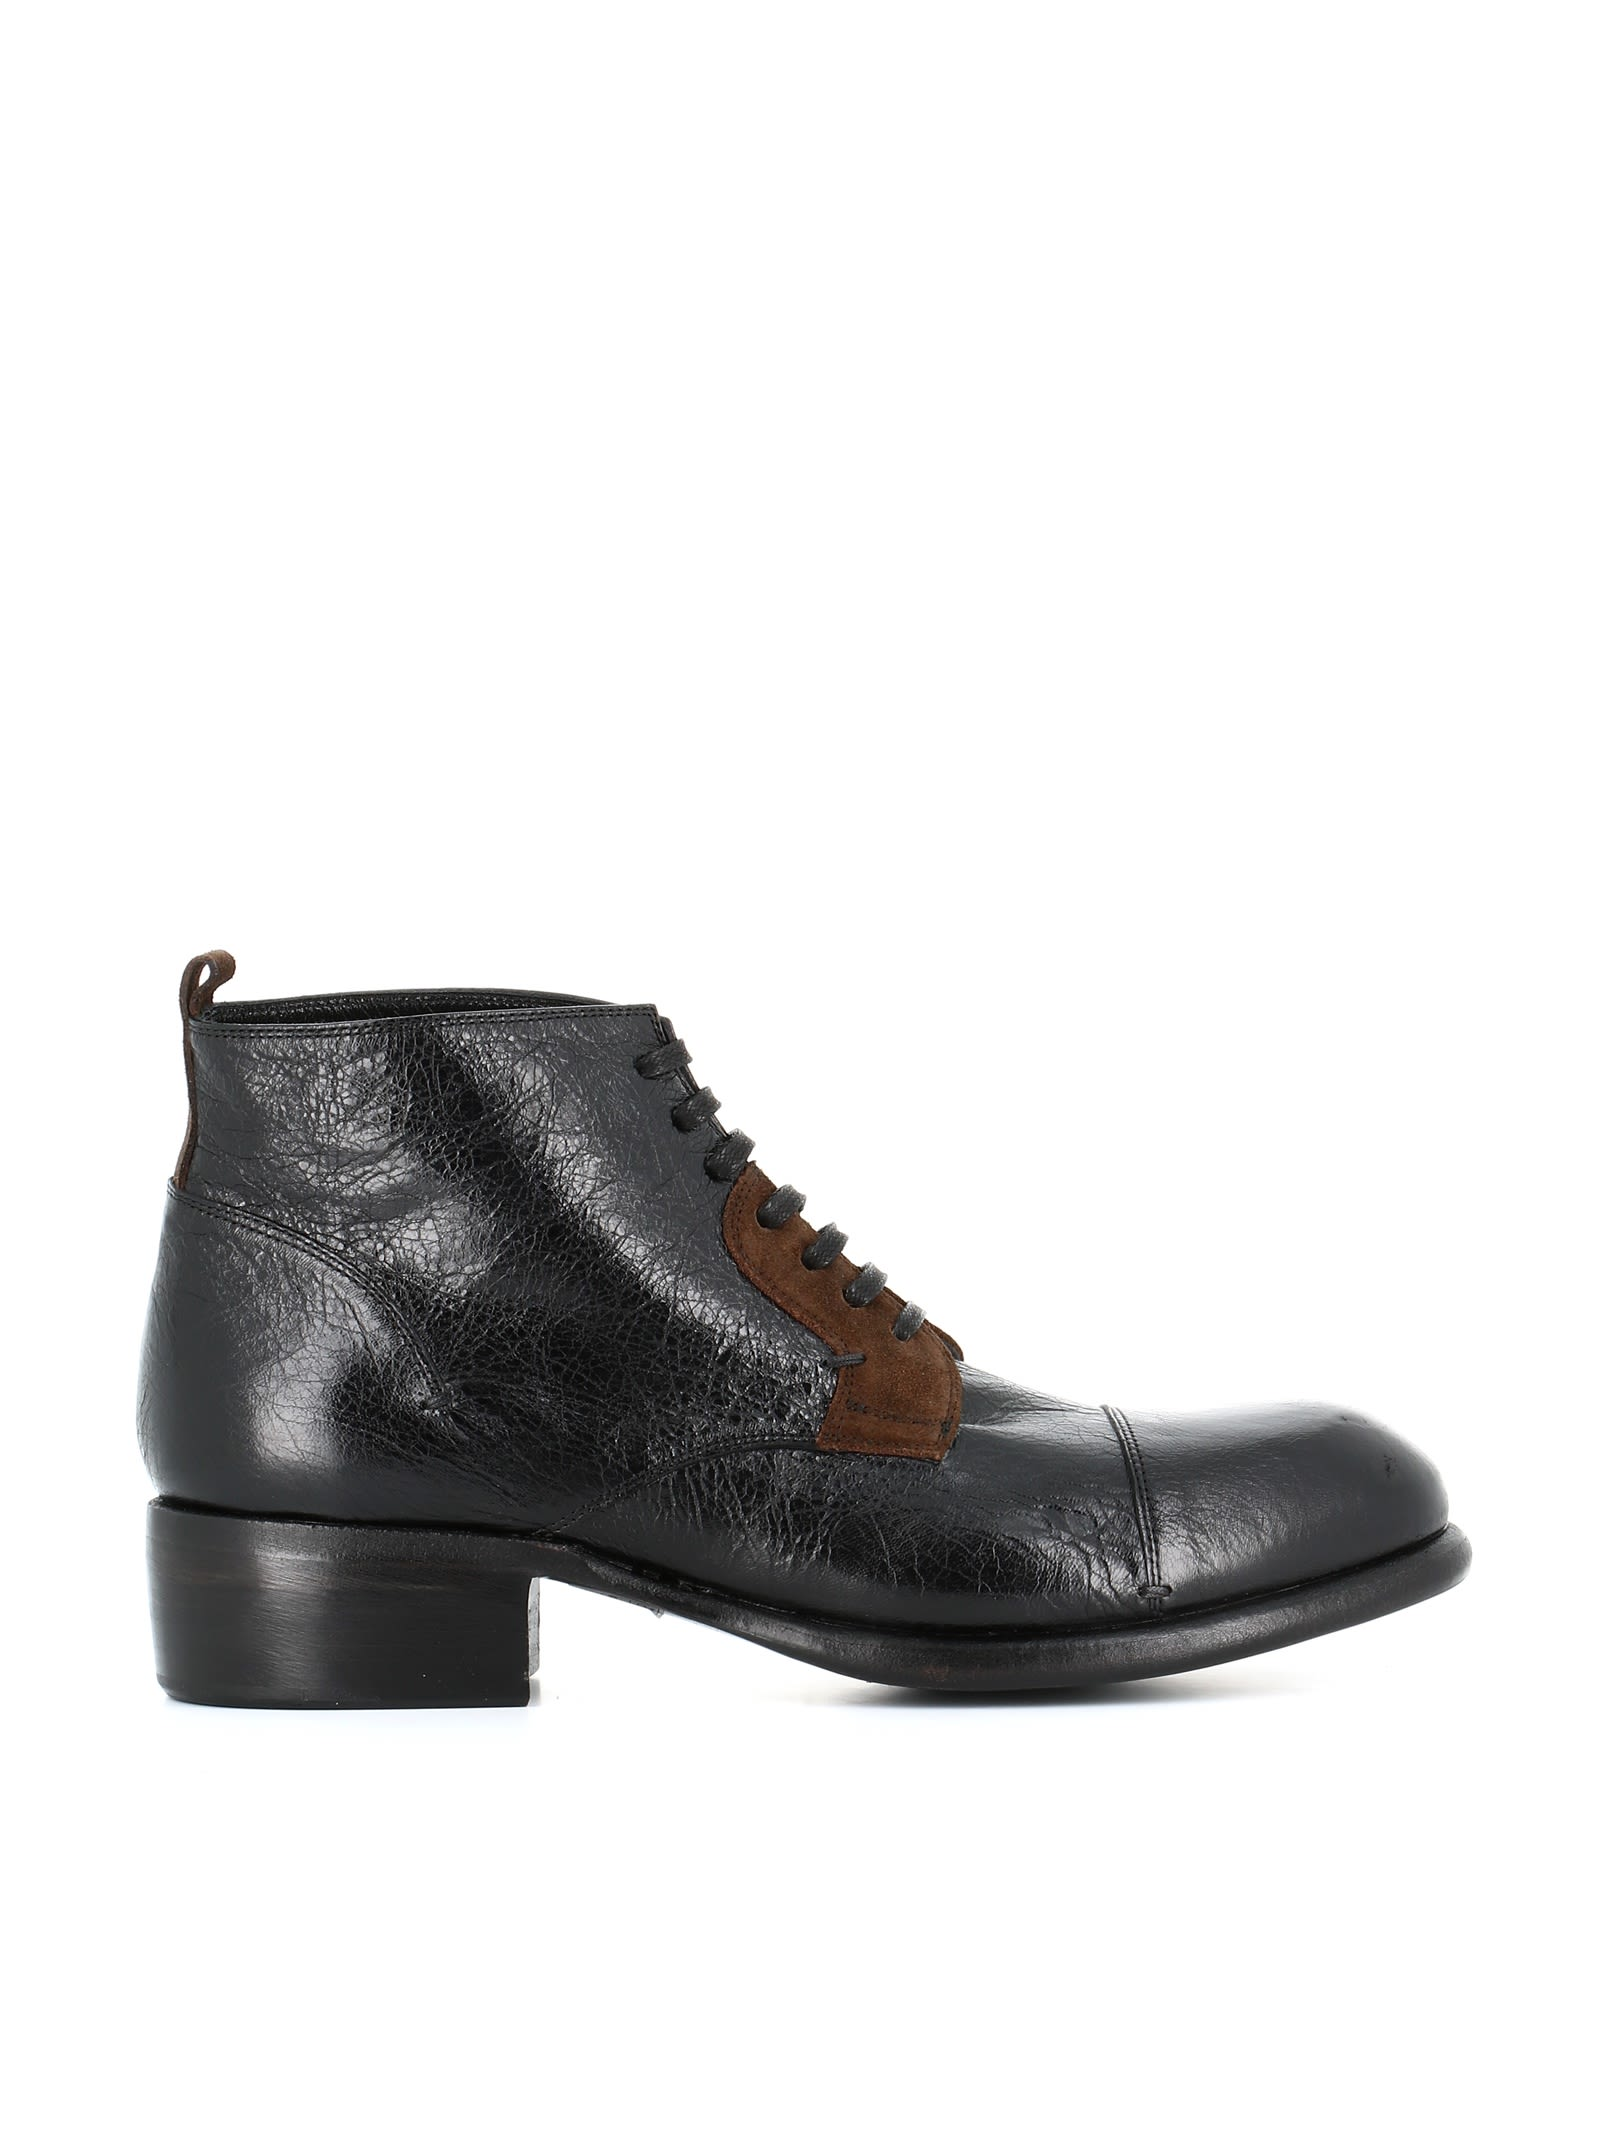 """ROCCO P. Lace-Up Boots """"7012"""" in Black"""